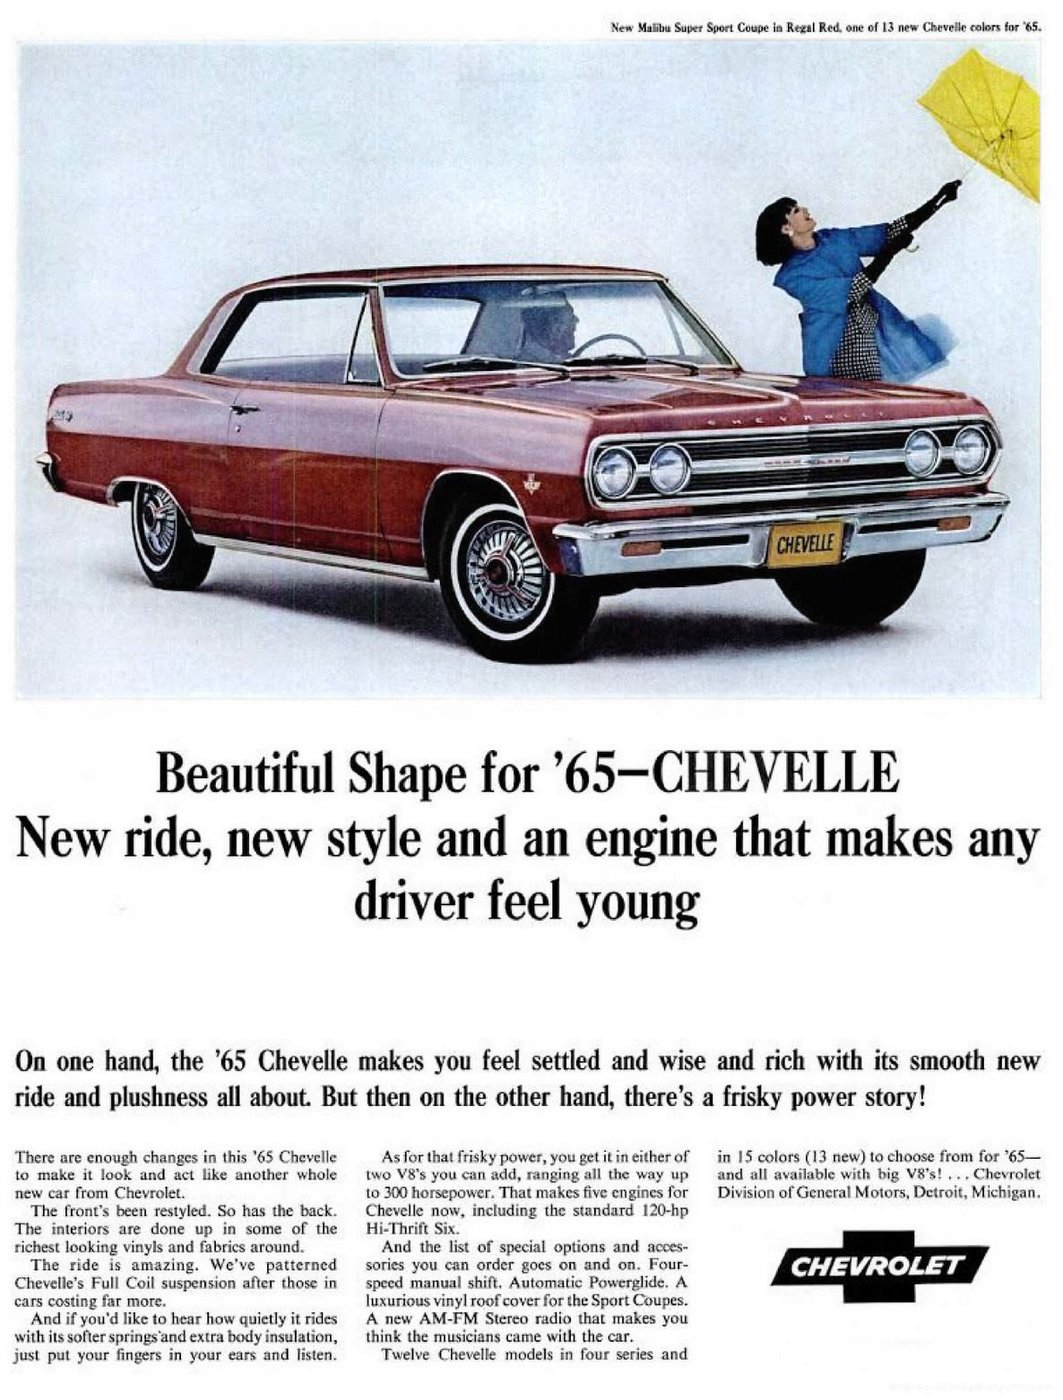 1965 Chevelle - Chevy cars